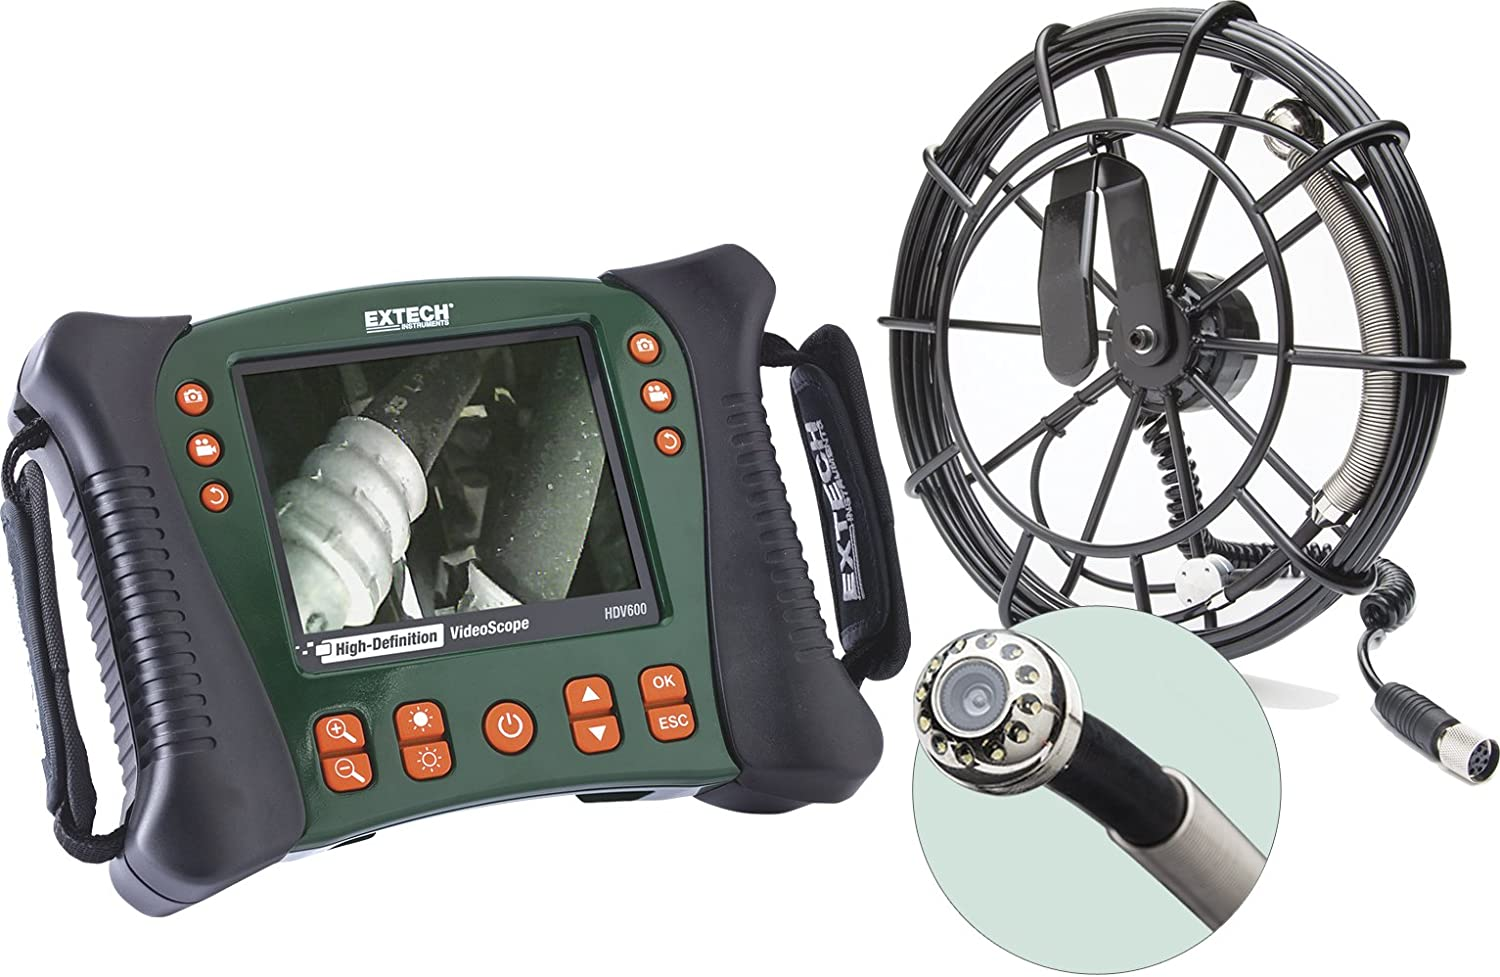 Extech HDV610 High Definition VideoScope with 5.5mm Camera and Meter Flexible Cable